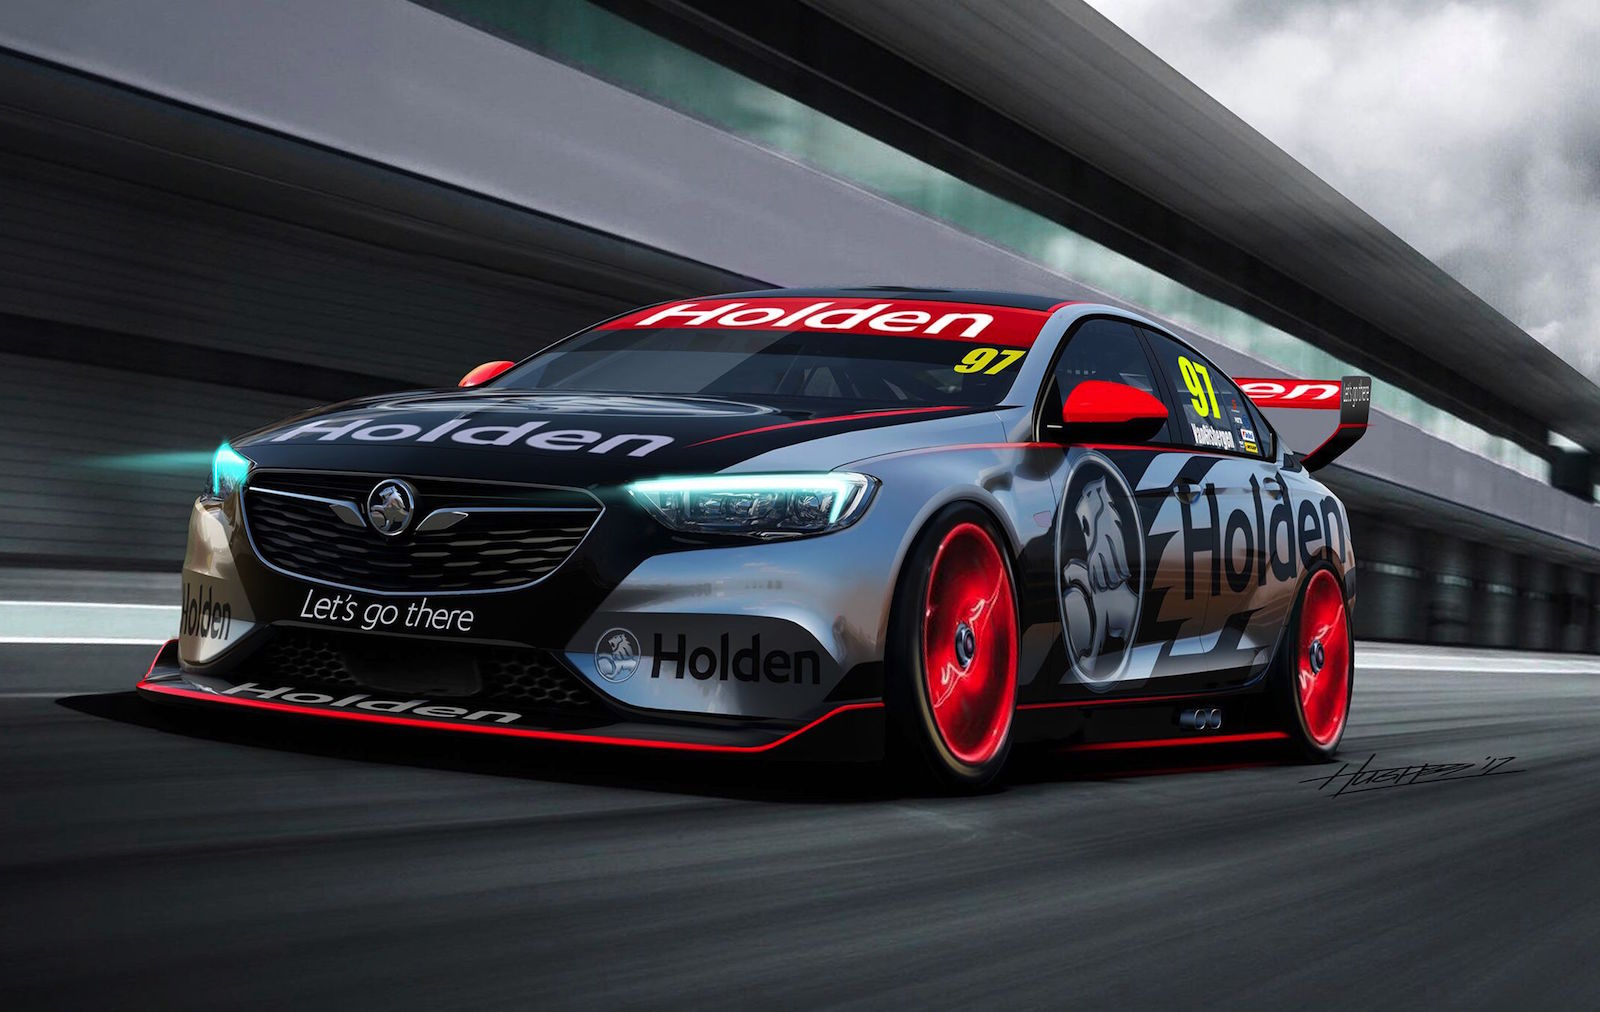 2018 Holden Commodore Supercar race car revealed | PerformanceDrive